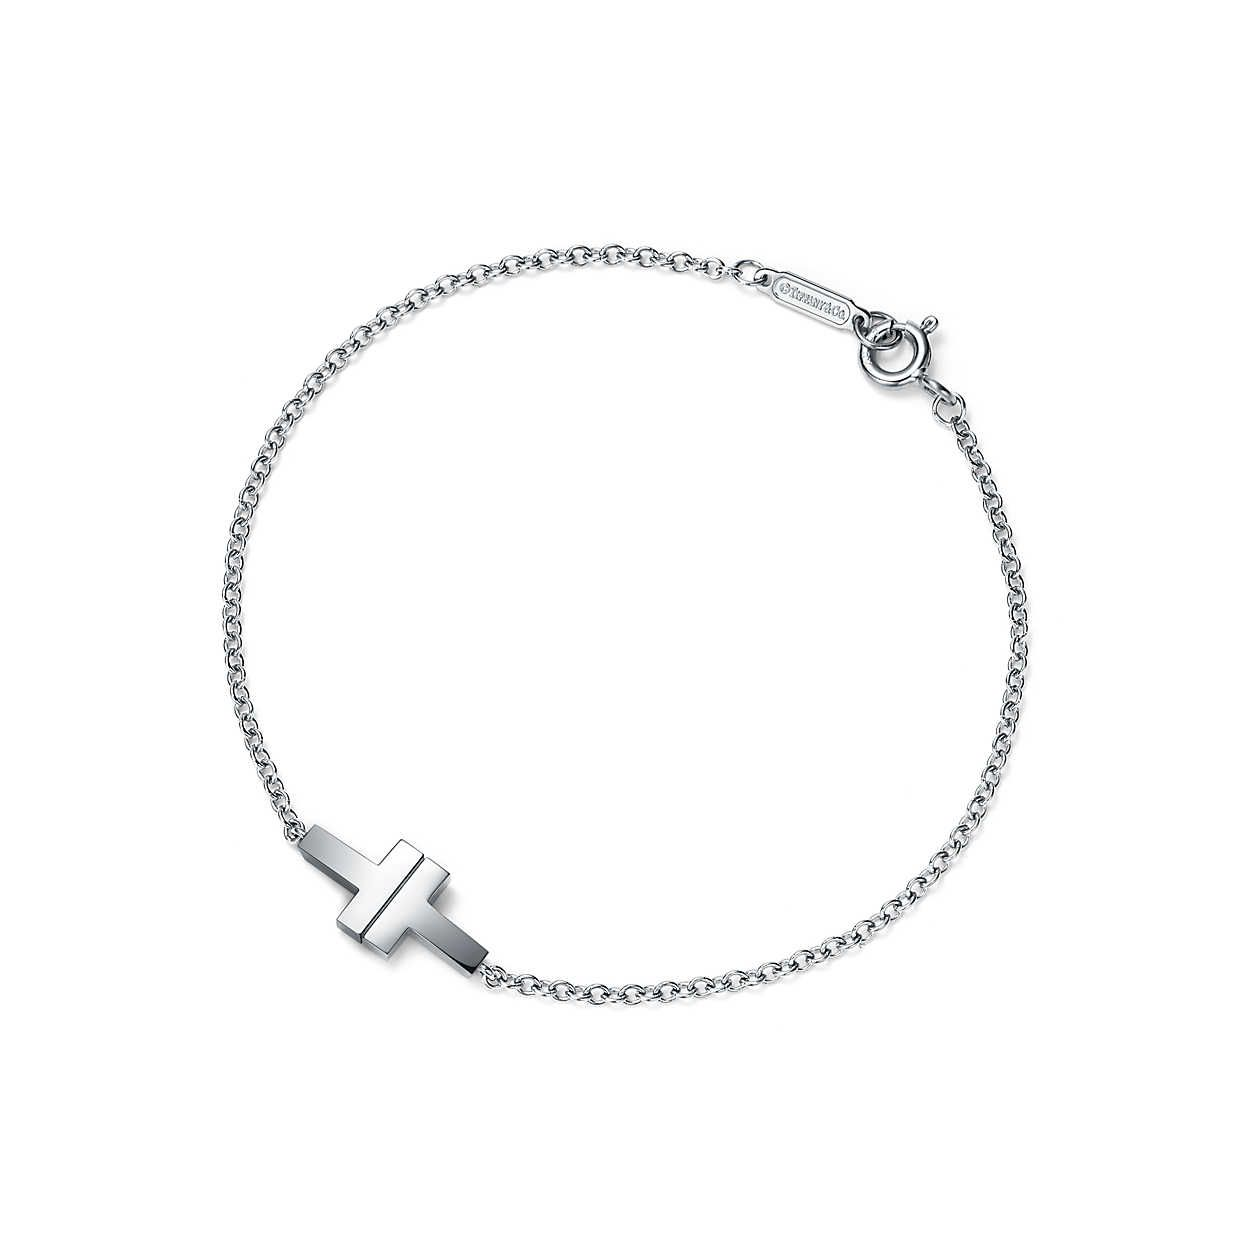 Tiffany T Two Single Chain Bracelet In Sterling Silver Medium Tiffany Co Tiffany And Co Bracelet Tiffany T Silver Bracelets For Women